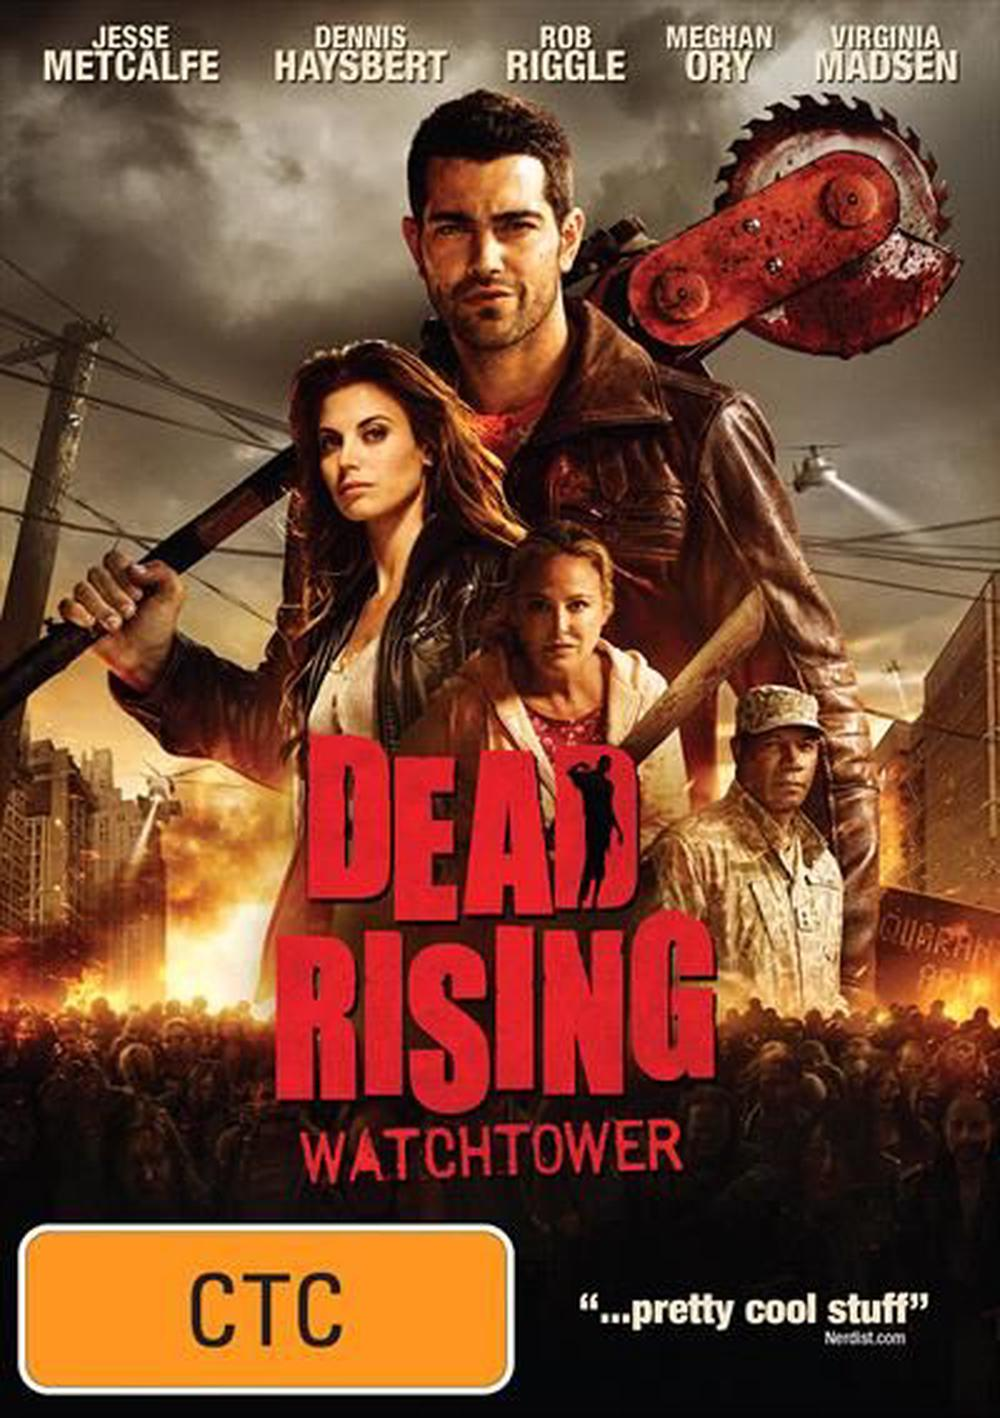 Dead Rising Watchtower Dvd Buy Online At The Nile